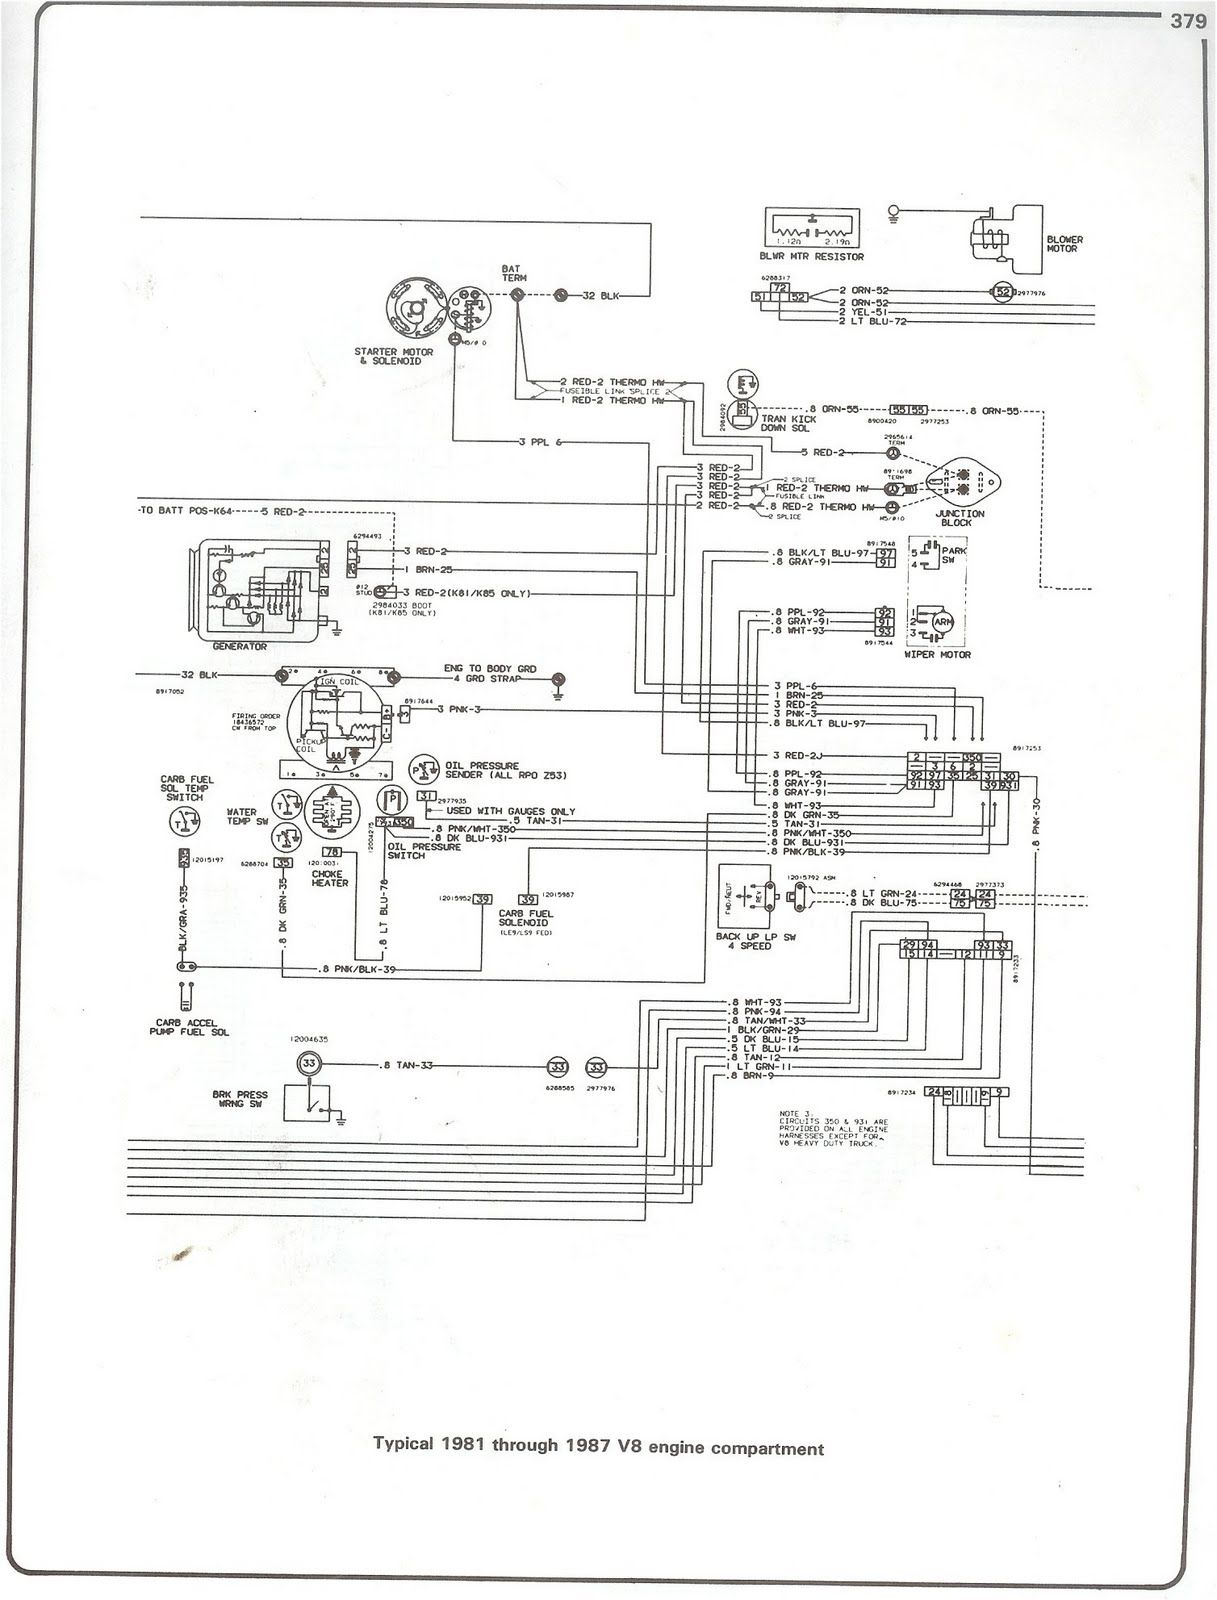 engine wiring diagram 1986 k 5 wiring diagram centre1985 k 5 chevy blazer wiring diagram wiring [ 1217 x 1600 Pixel ]